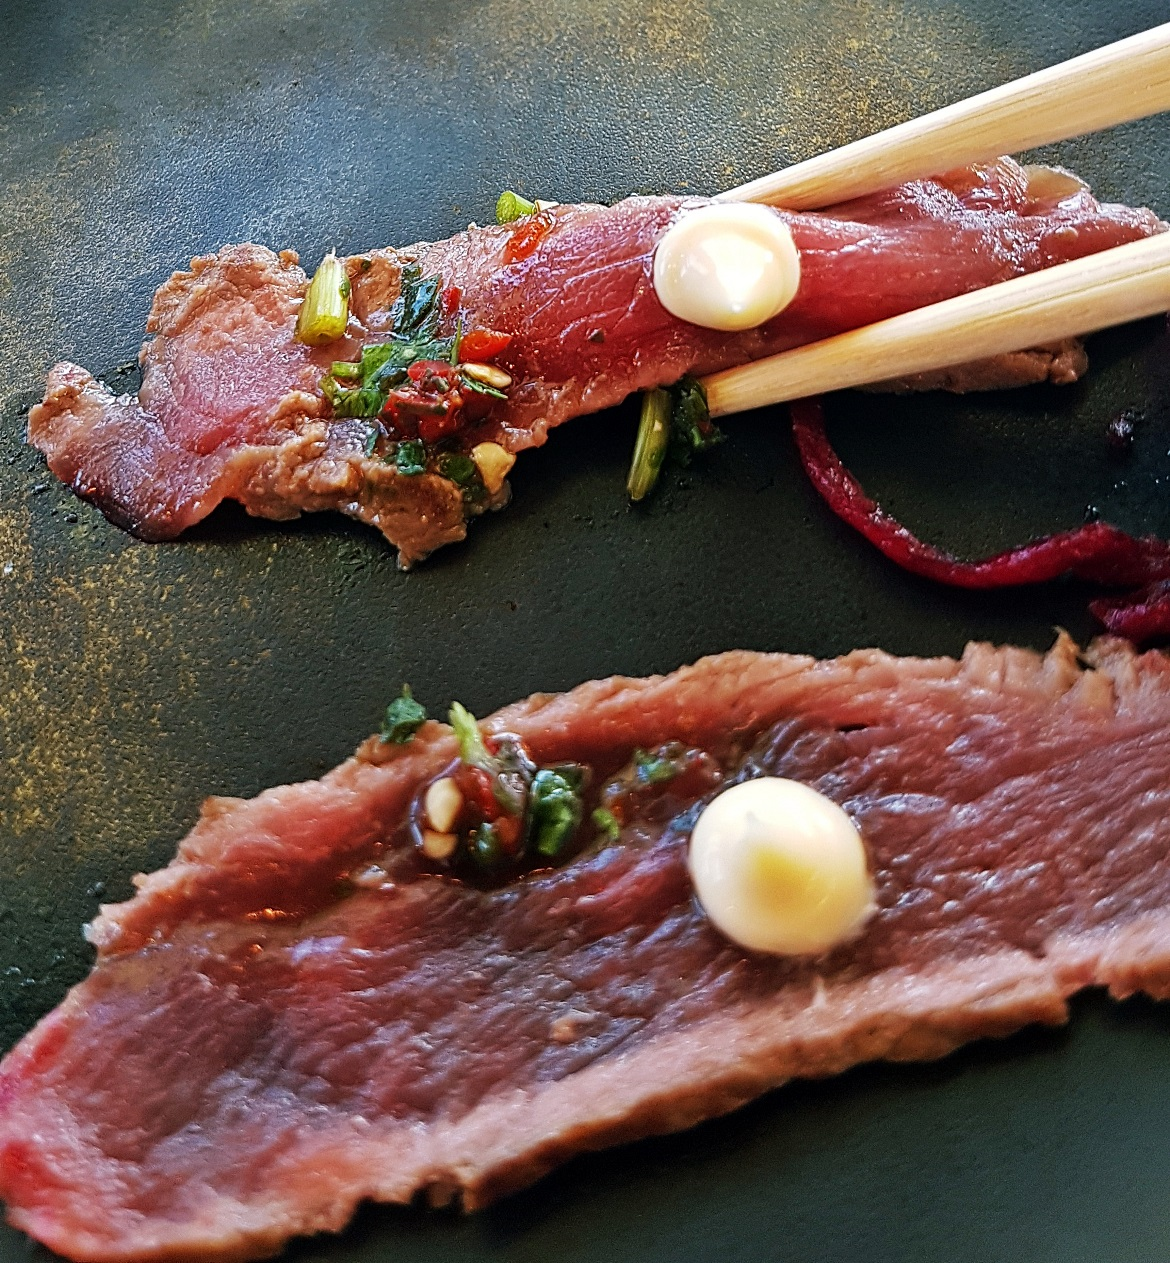 Beef tataki - Wagamama Menu Pairing, Review by BeckyBecky Blogs